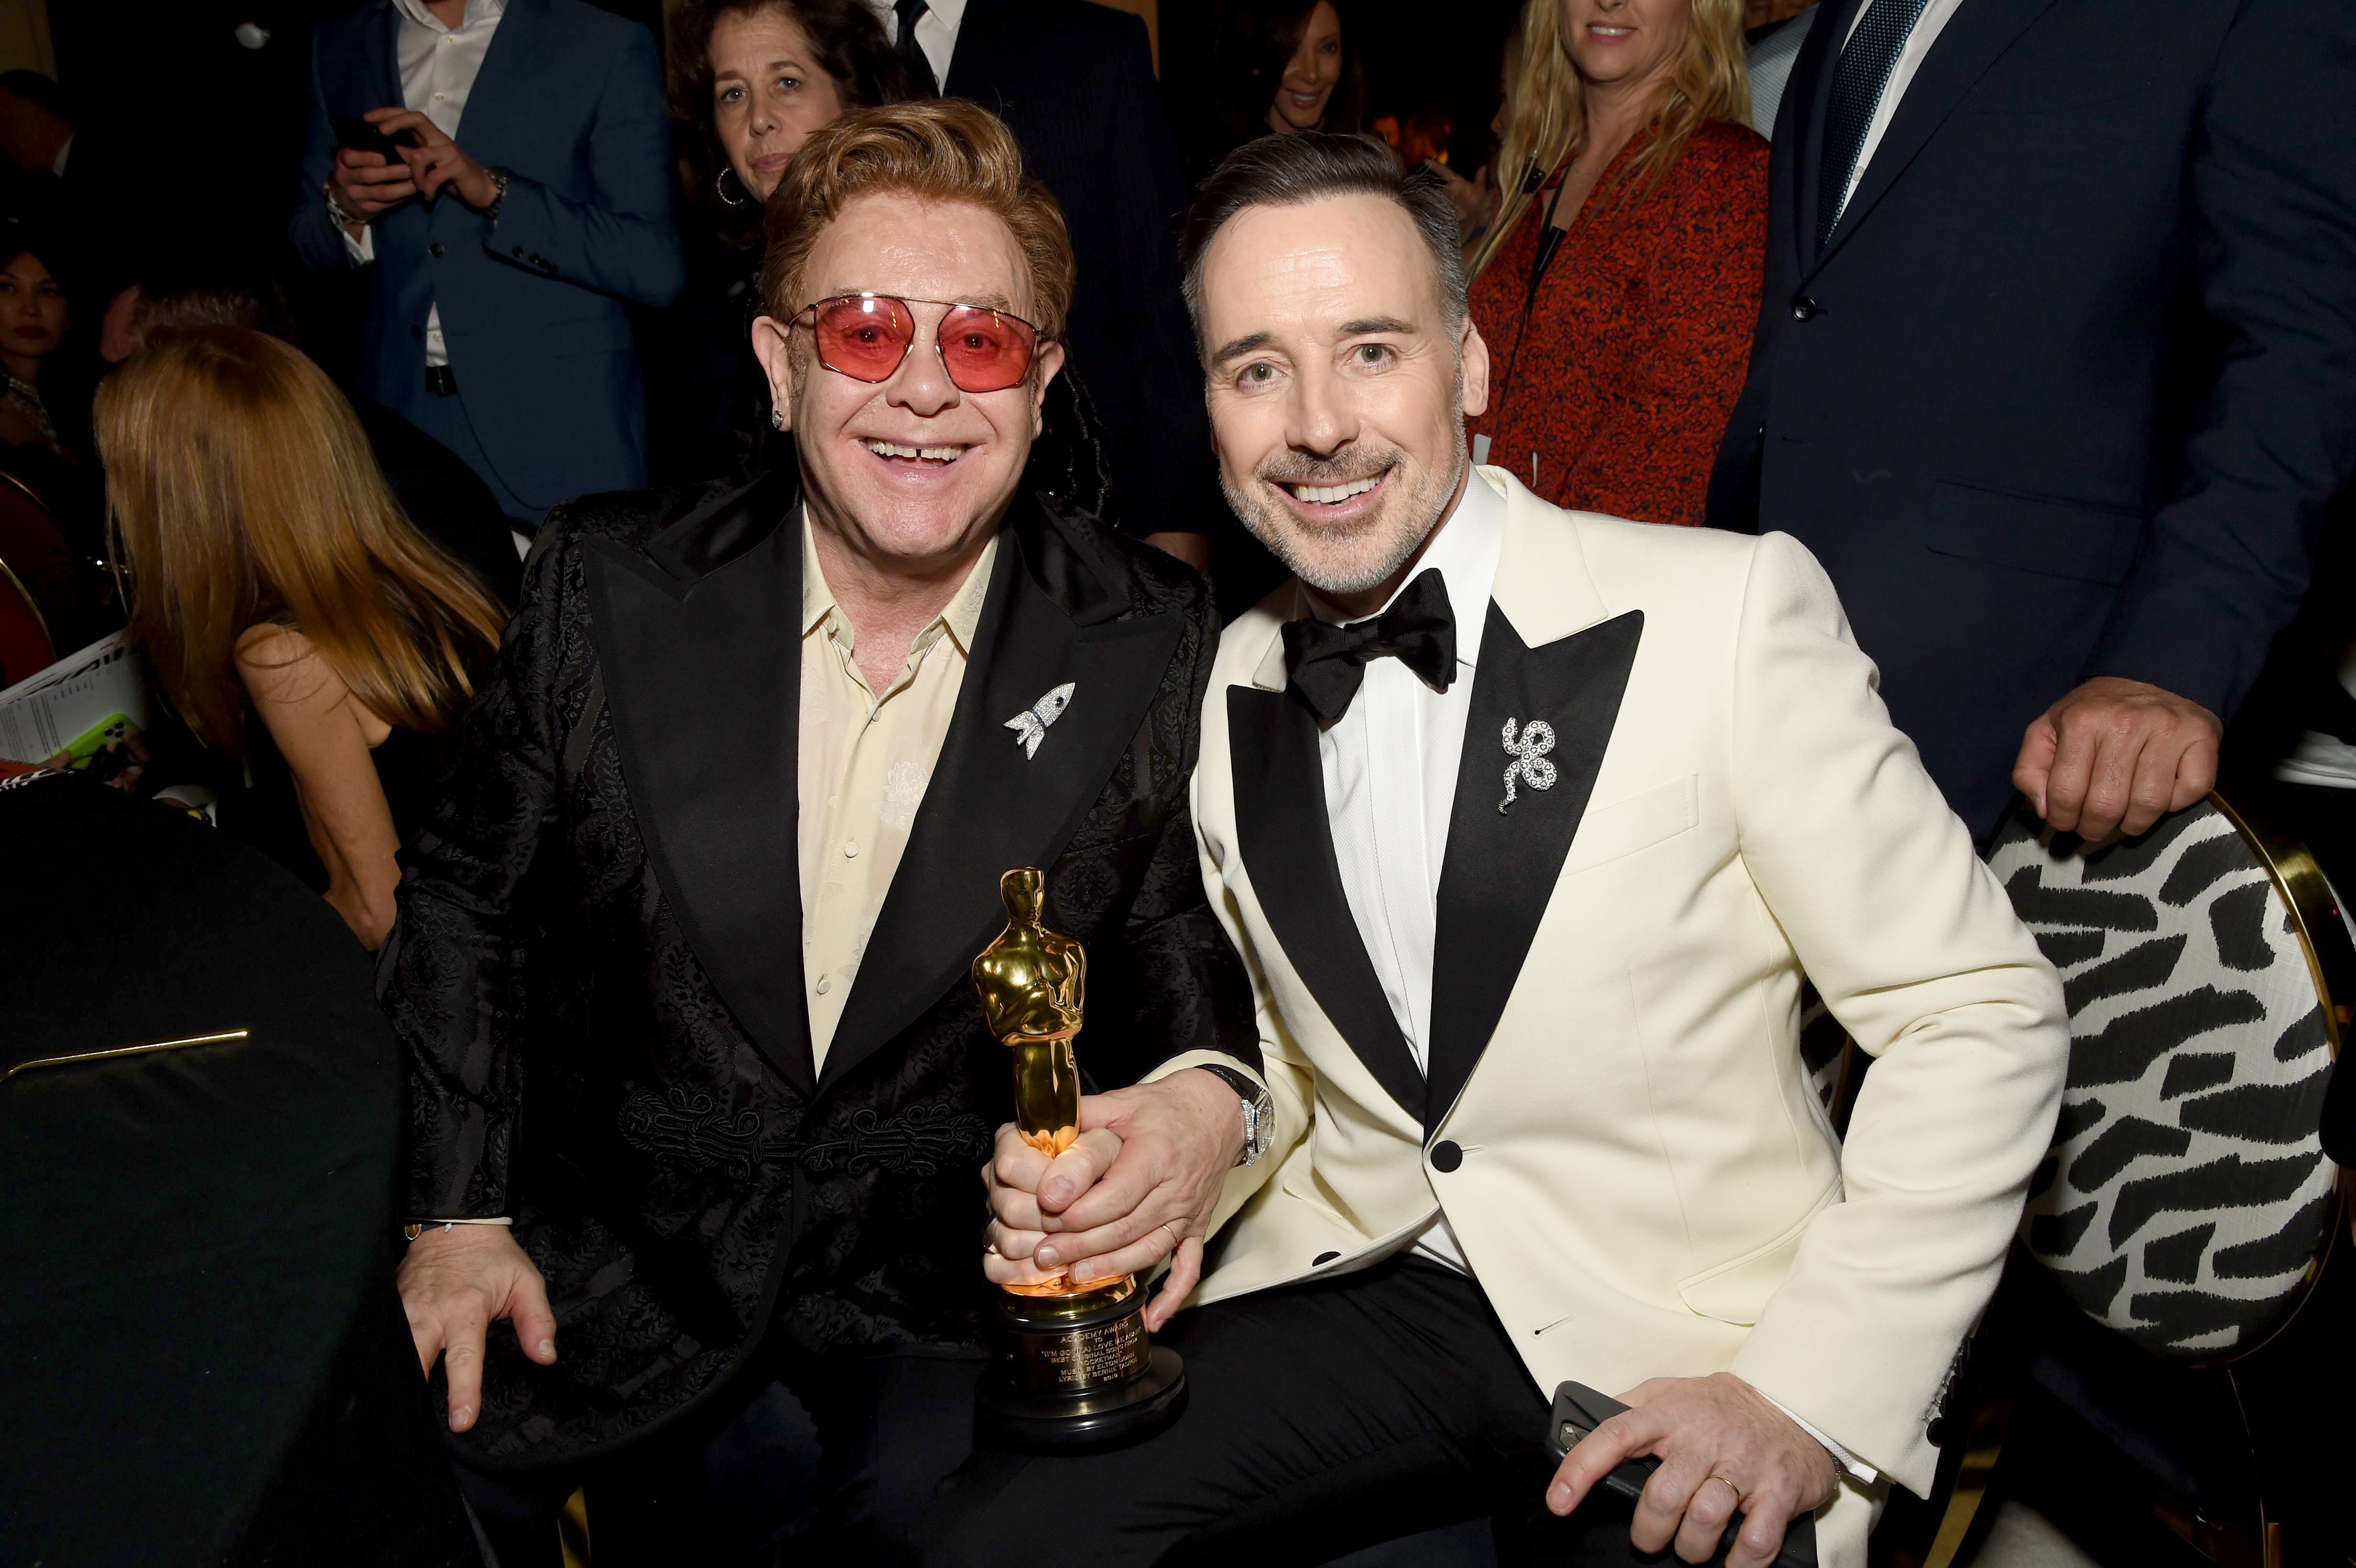 Positively Aware: Elton John and David Furnish by Michael Kovac